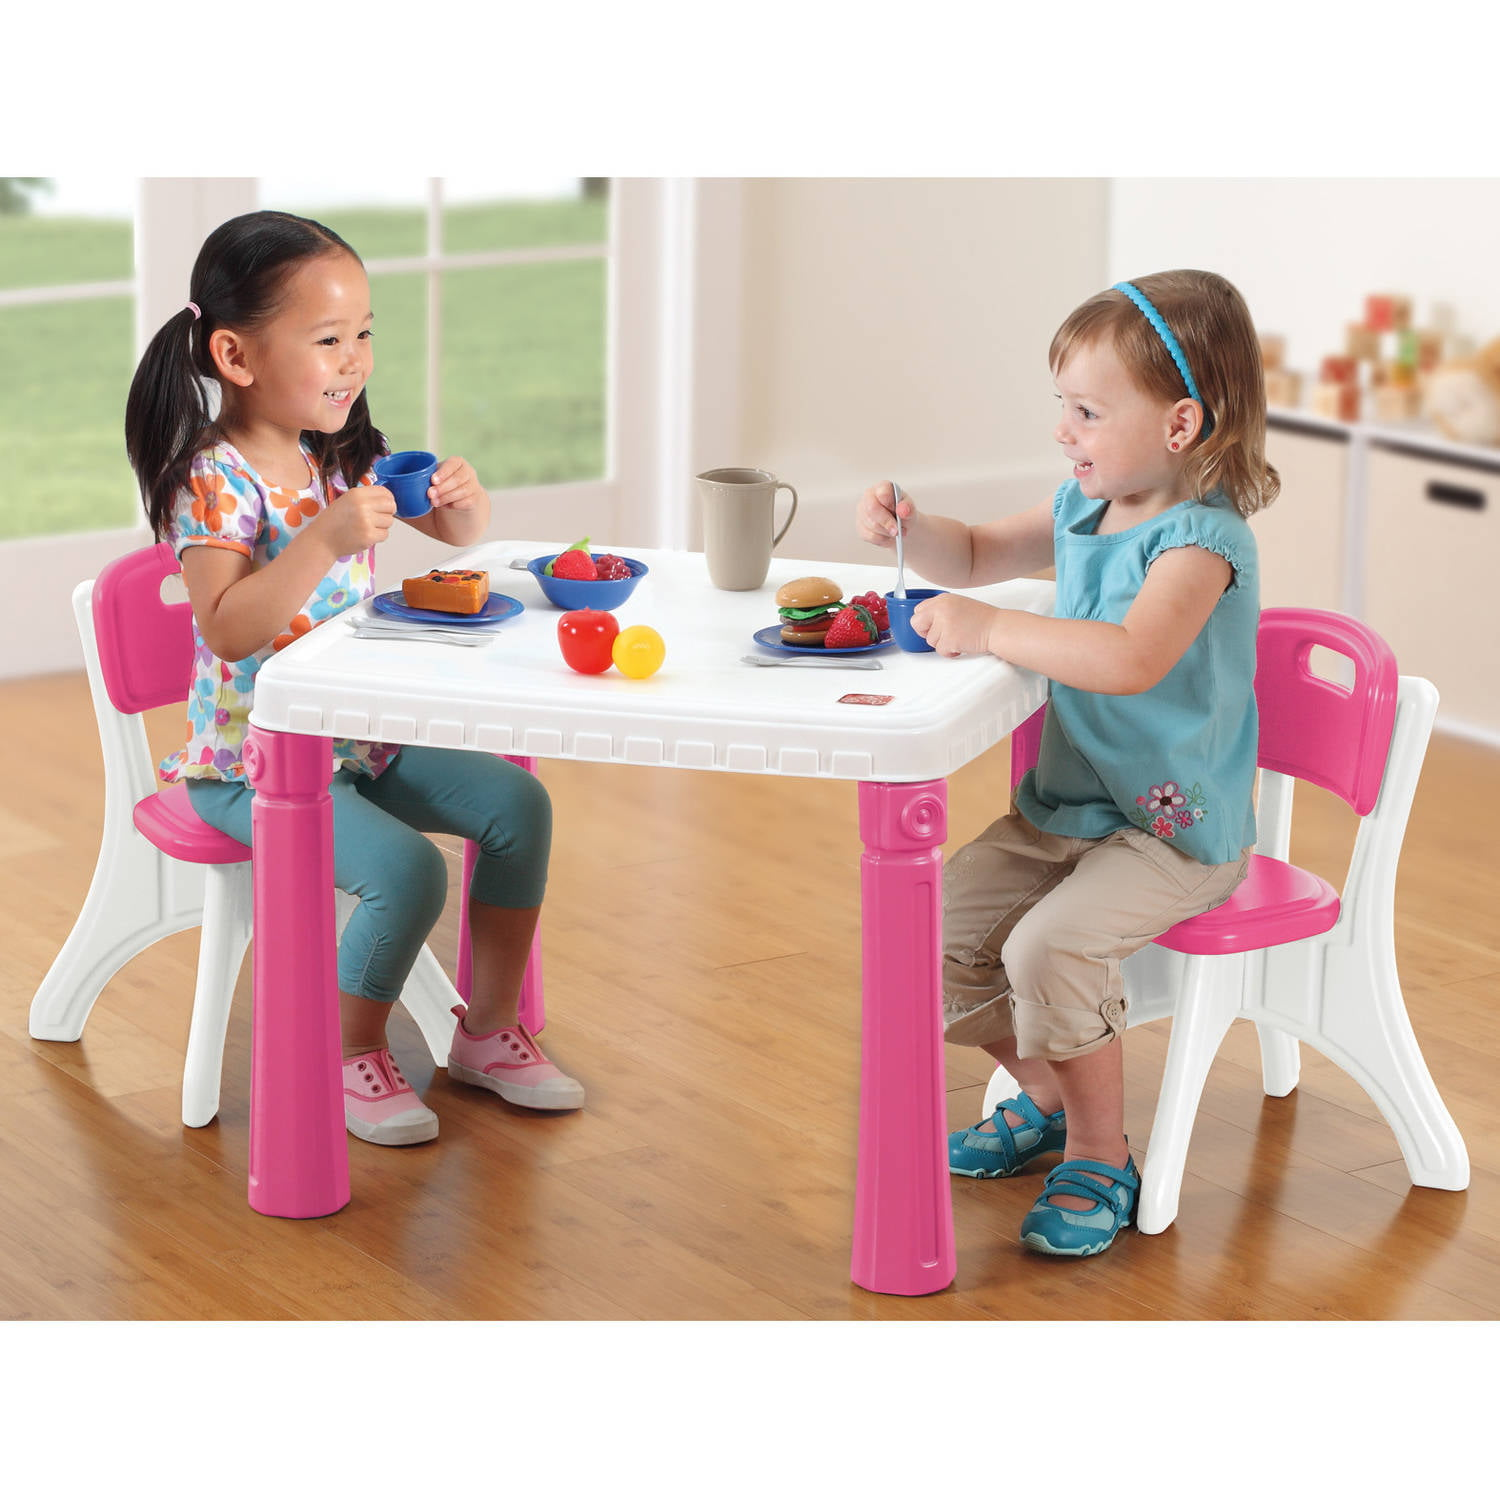 Step LifeStyle Kids Table And Chairs Set Multiple Colors - Wayfair kids table and chairs